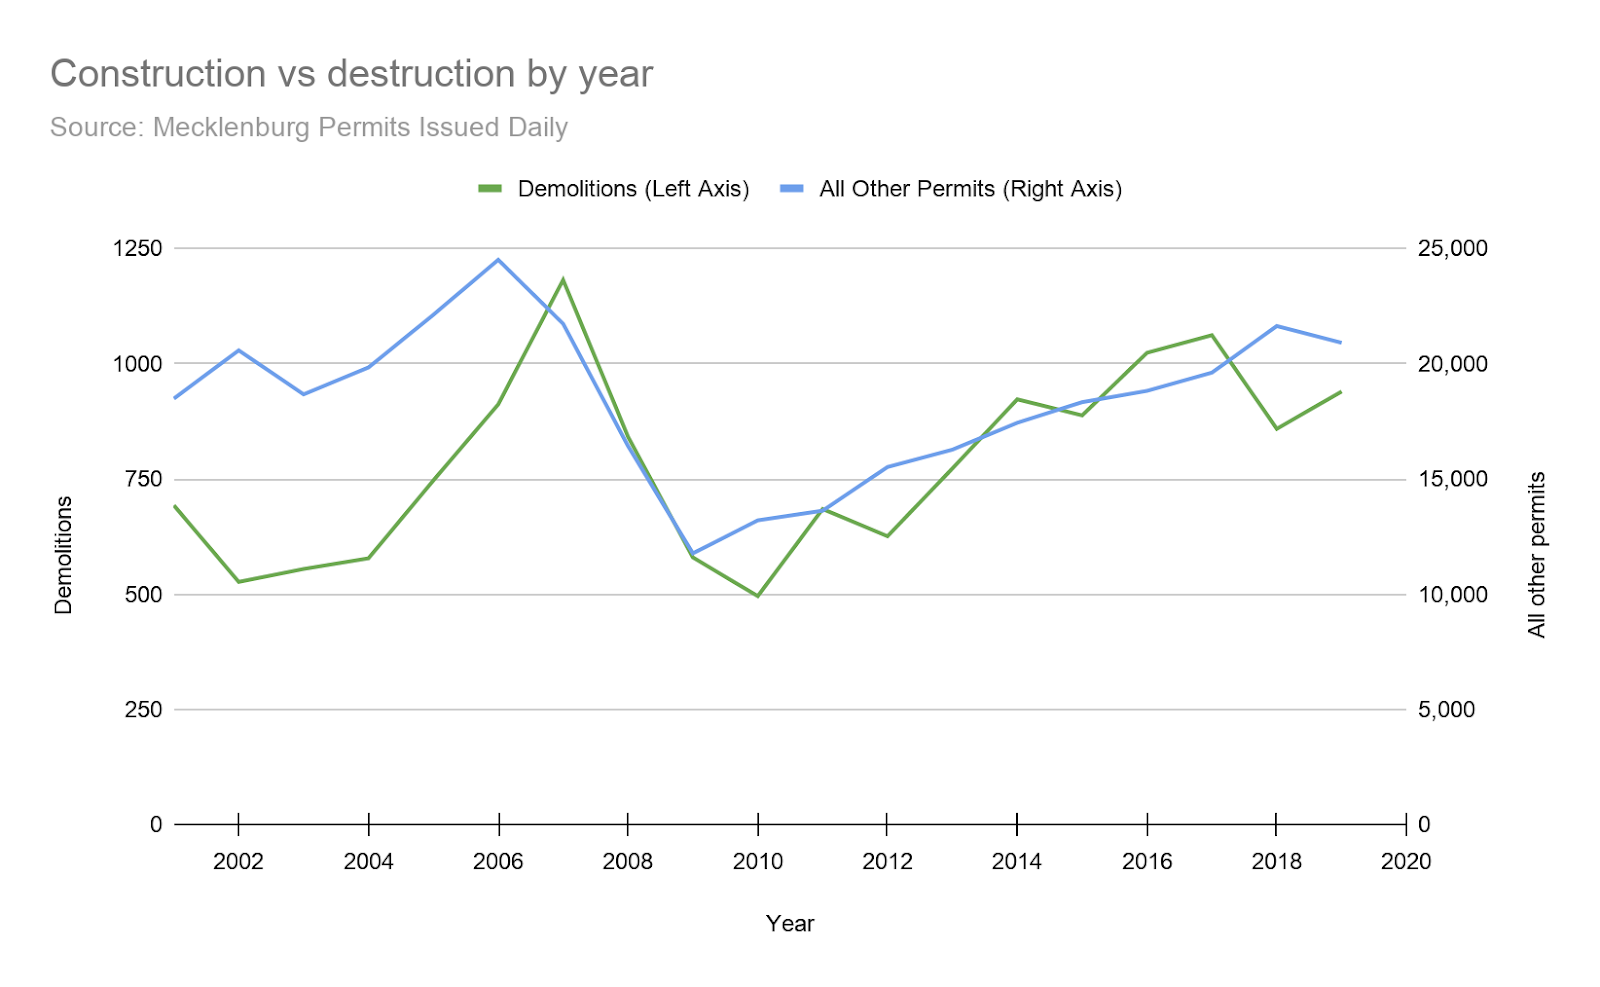 A graph of the construction versus destruction by year from 2002 to 2020.